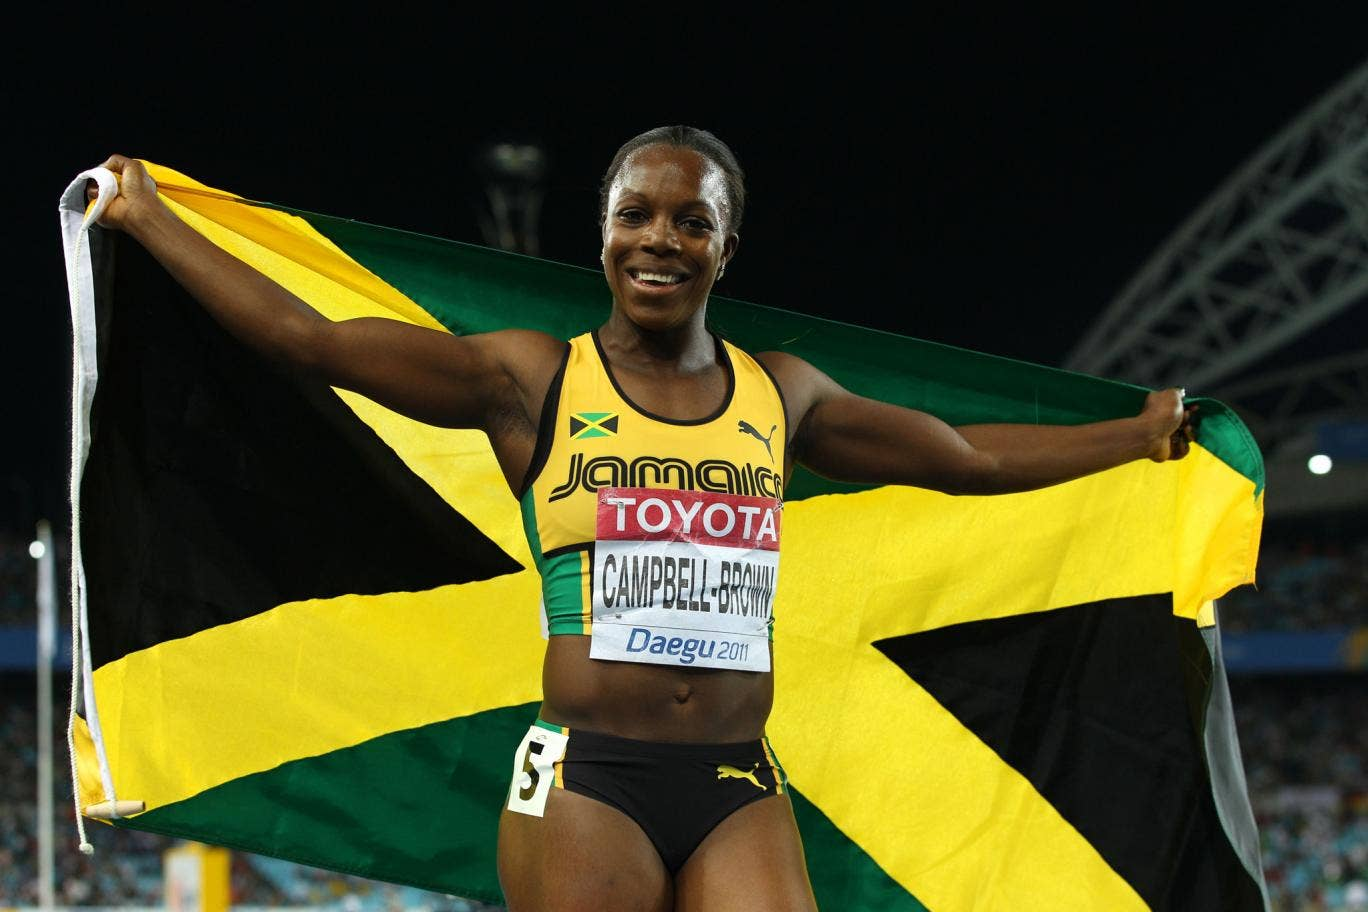 Jamaica's two-time Olympic 200m gold medalist Veronica Campbell Brown tested positive for a banned substance earlier this year